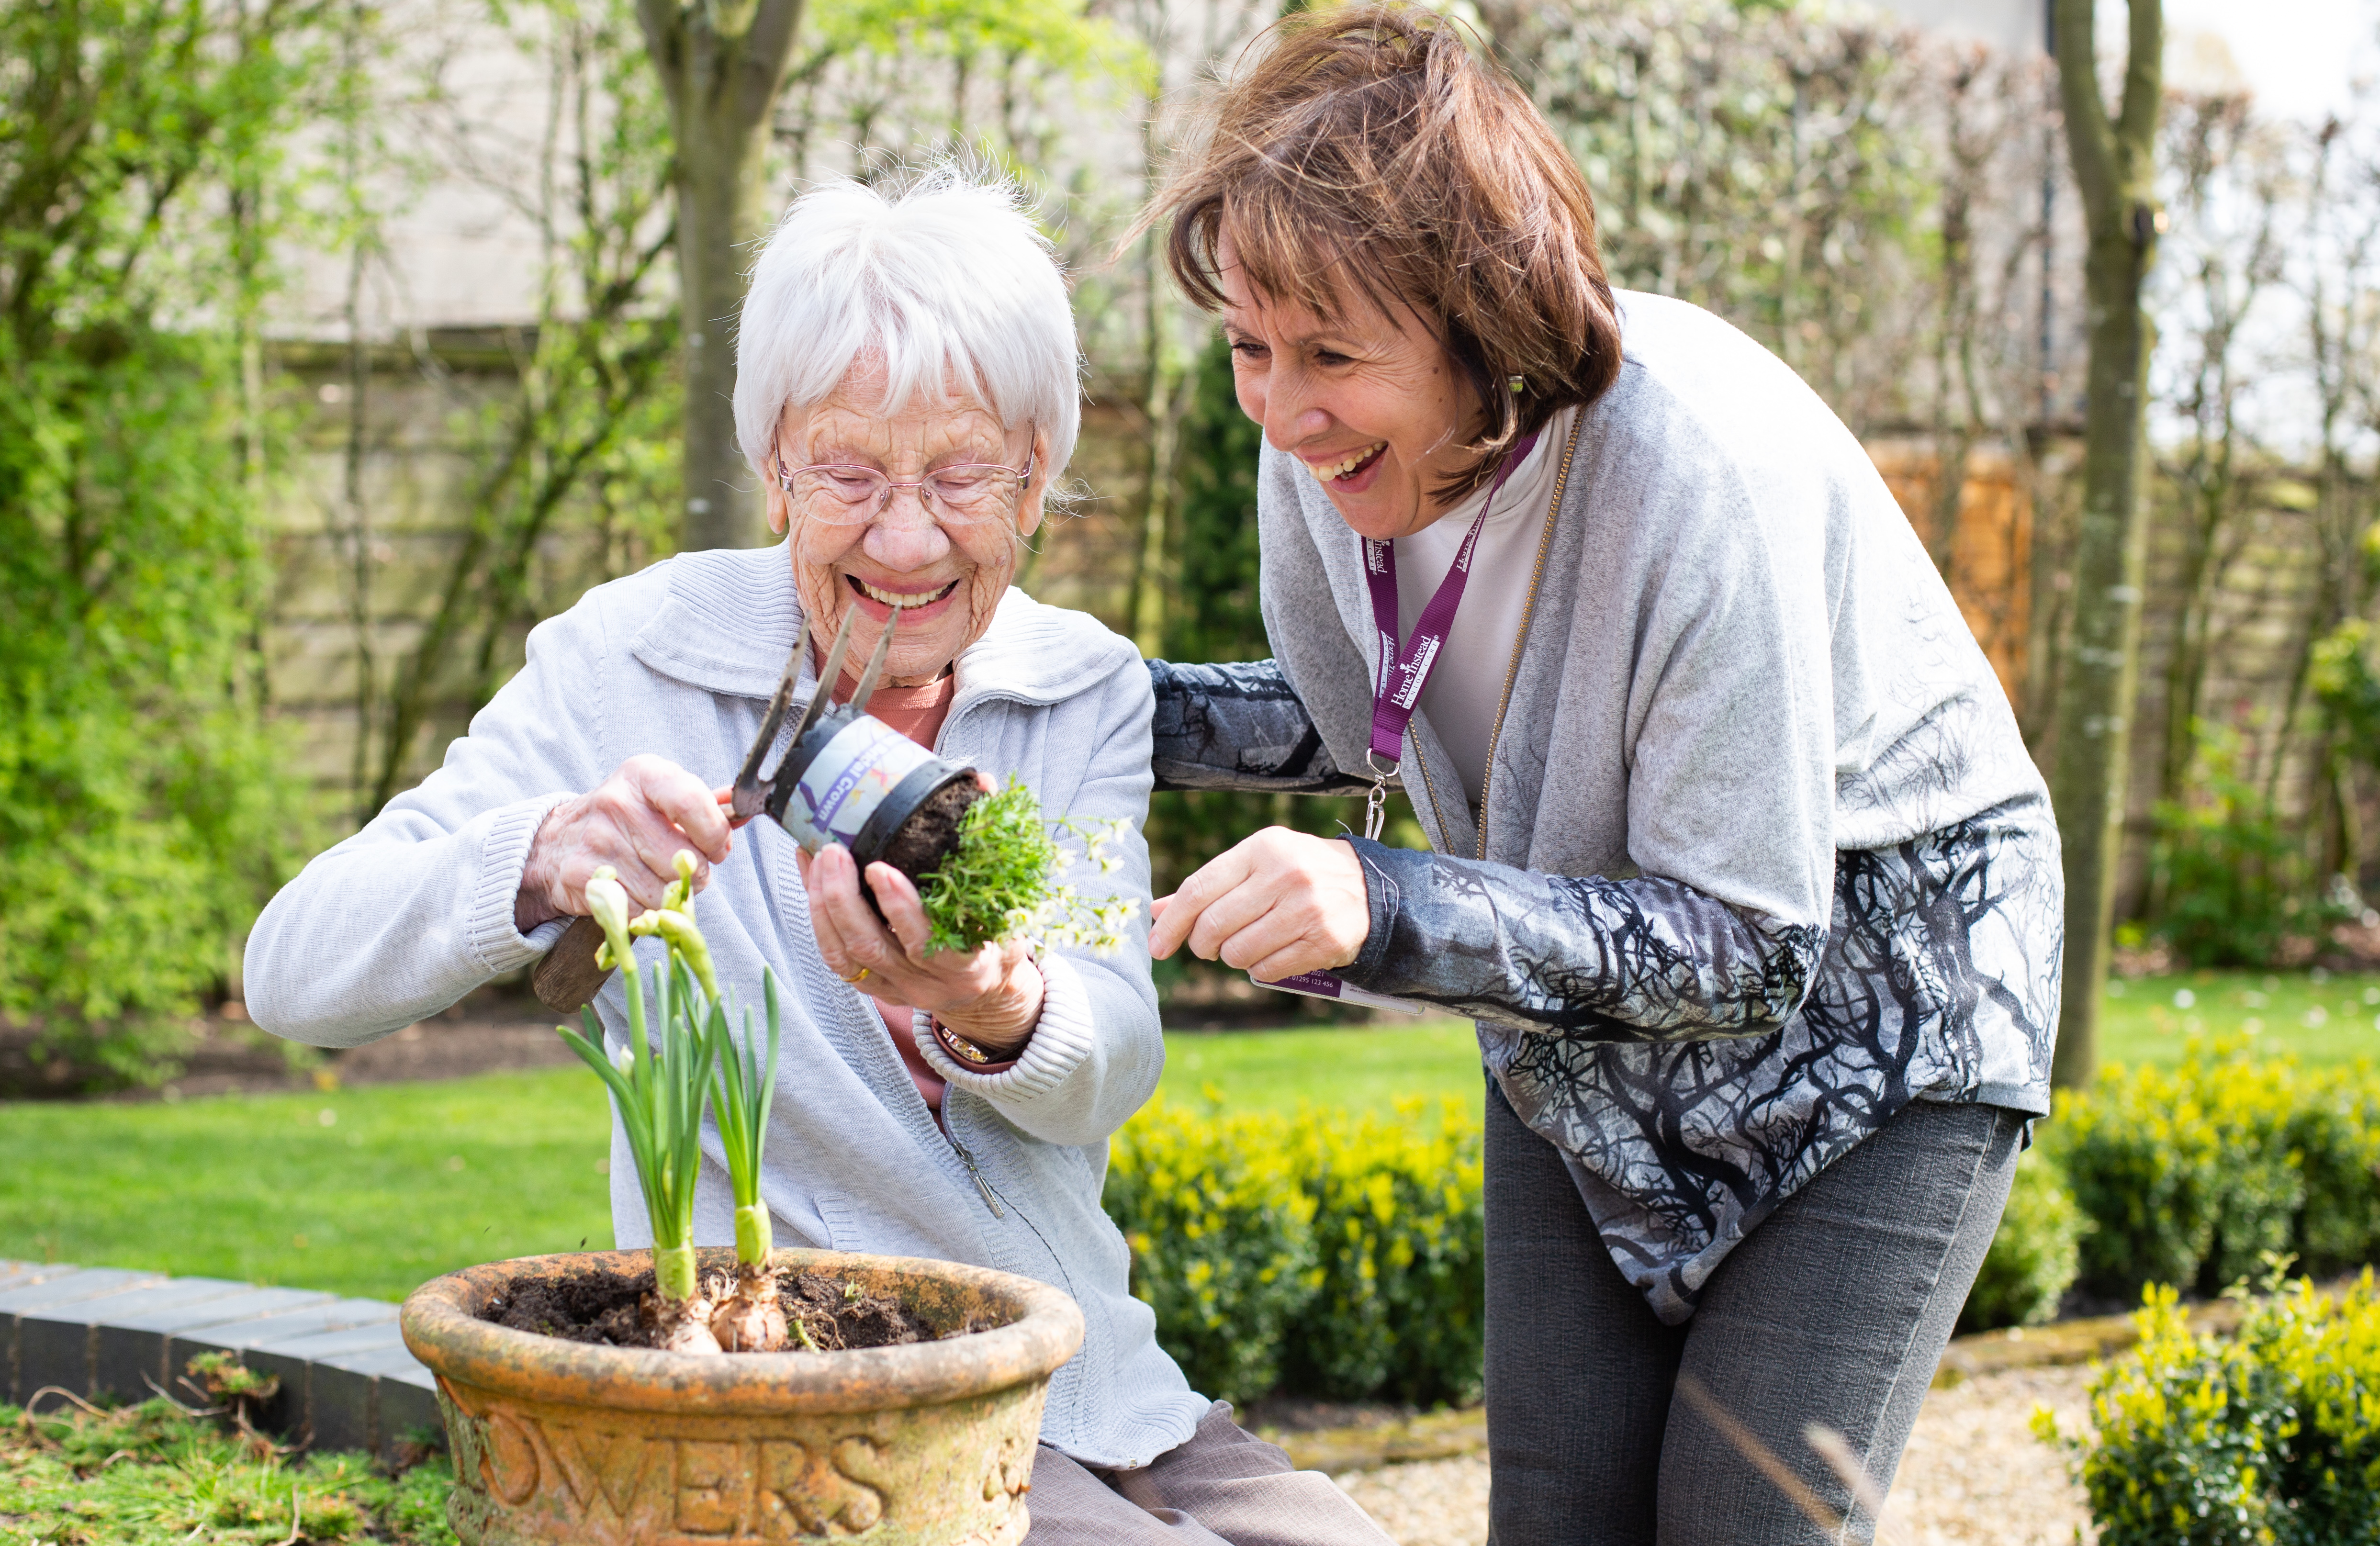 Client and CAREGiver gardening